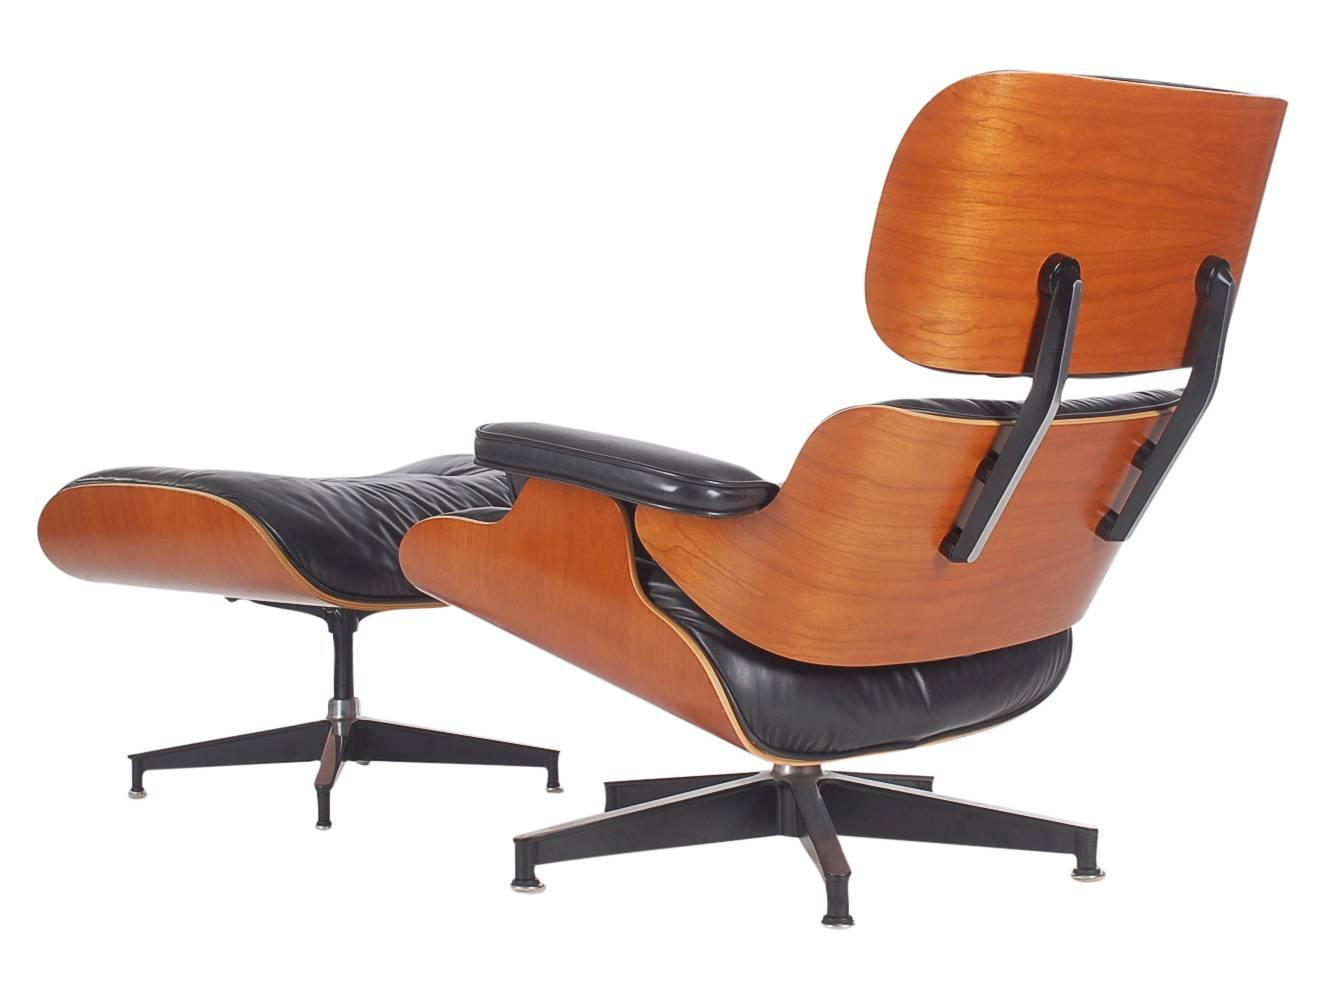 Charles eames for herman miller lounge chair and ottoman - Herman miller eames lounge chair and ottoman ...